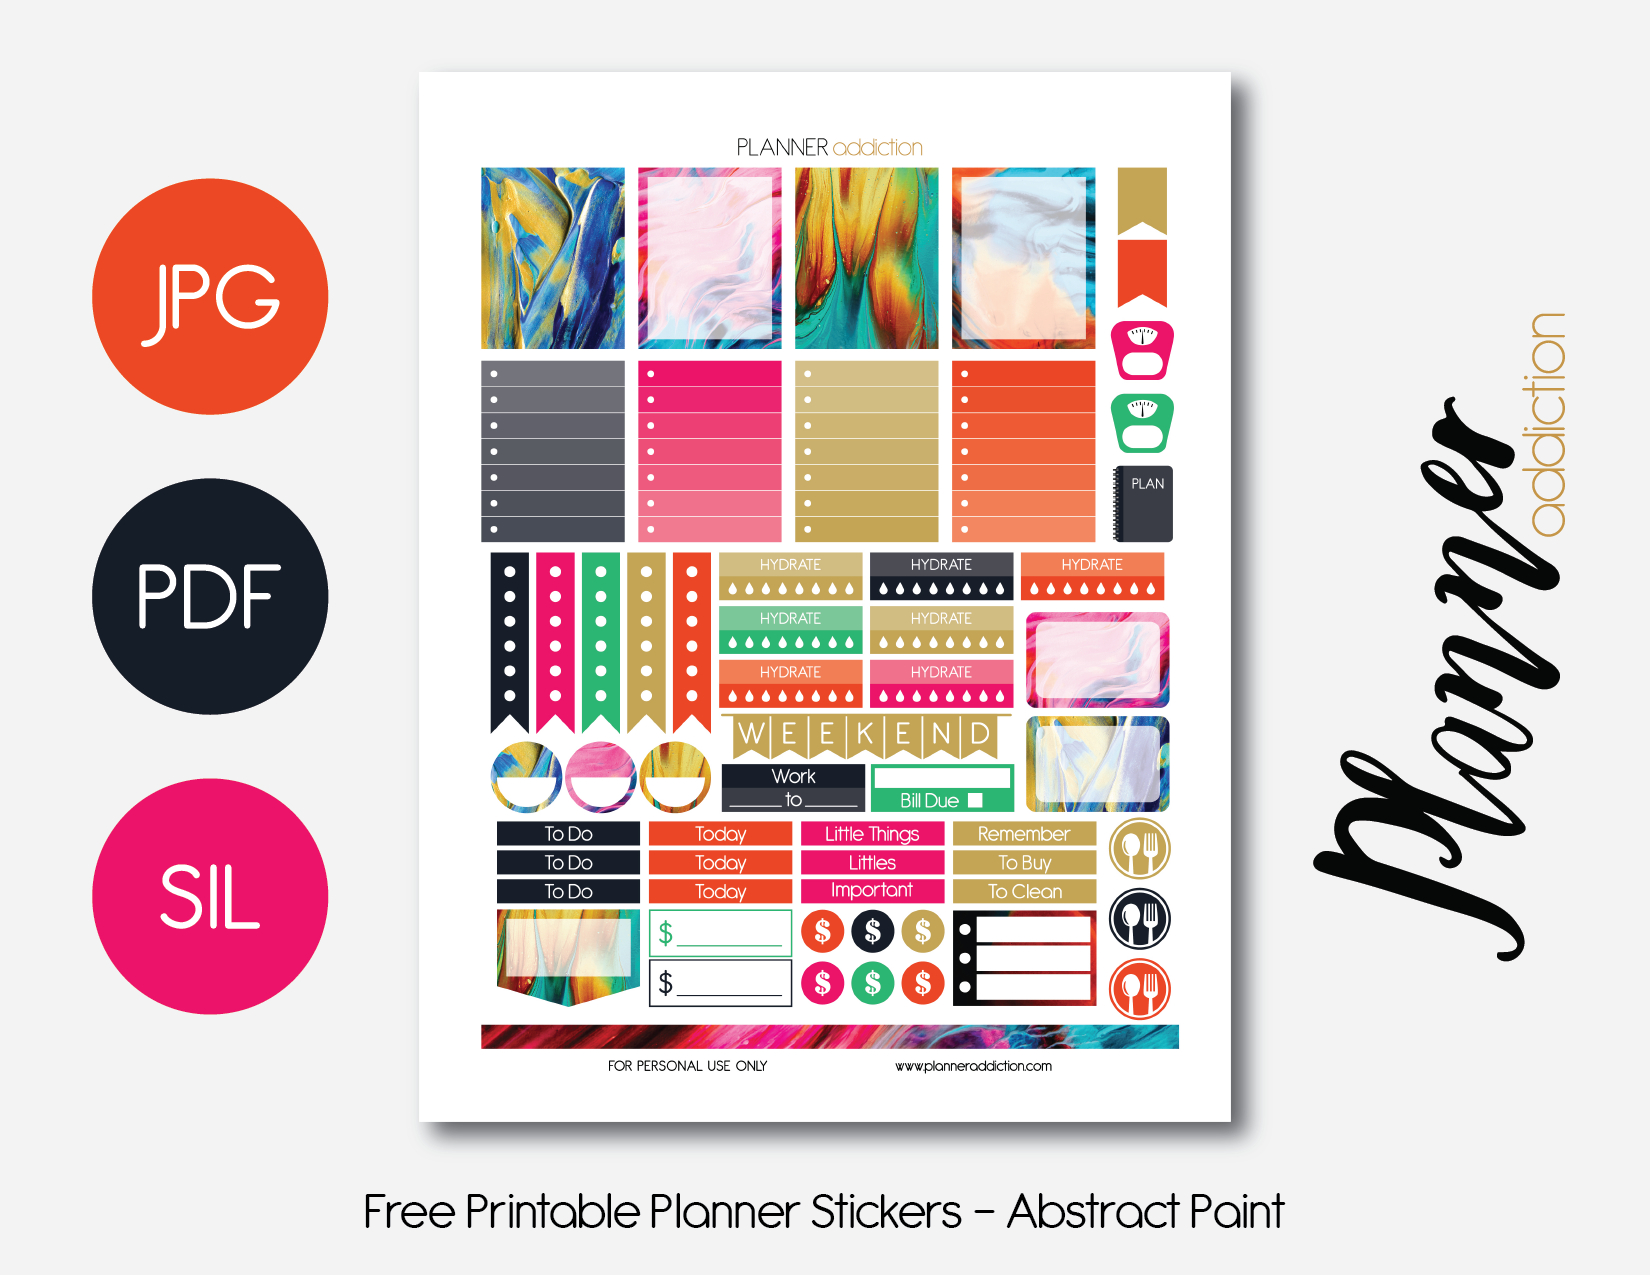 Free Printable Planner Stickers – Planner Addiction - Free Printable Planner Stickers